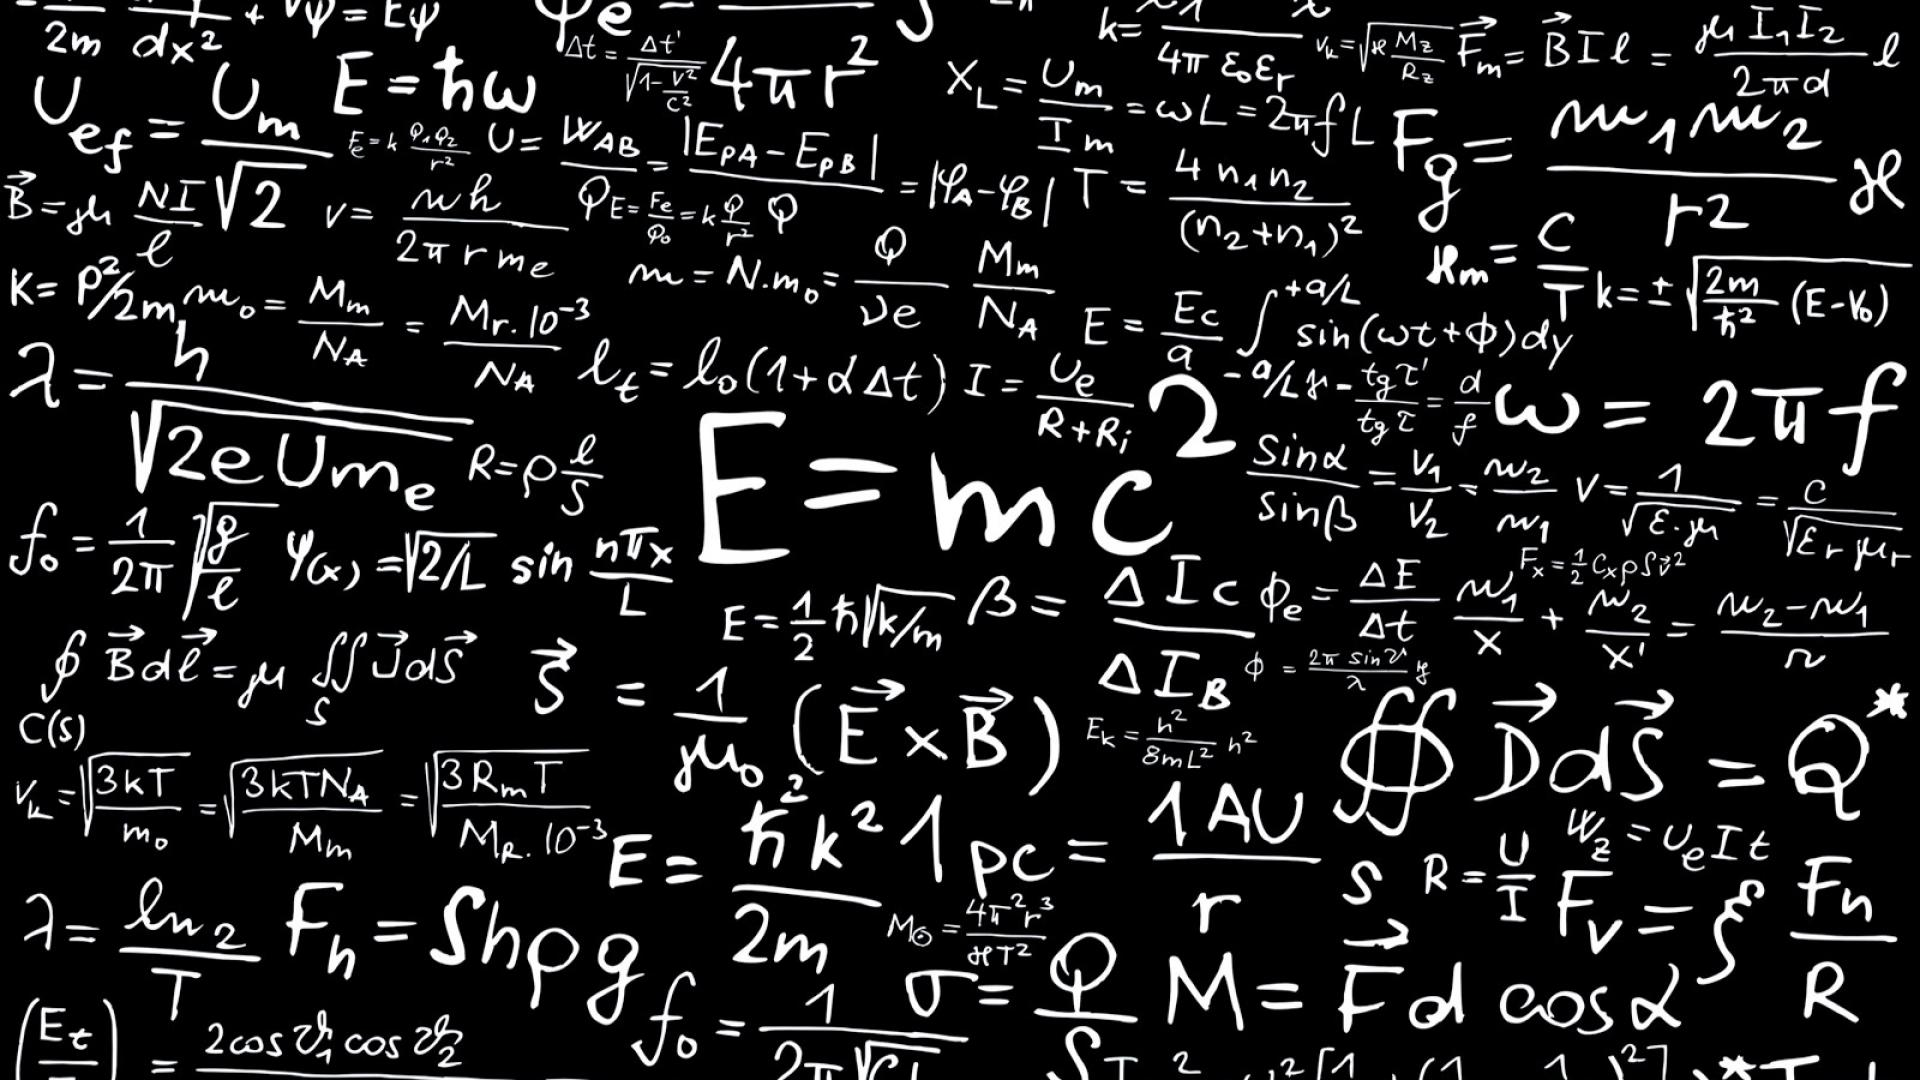 Math Equation Wallpaper - WallpaperSafari